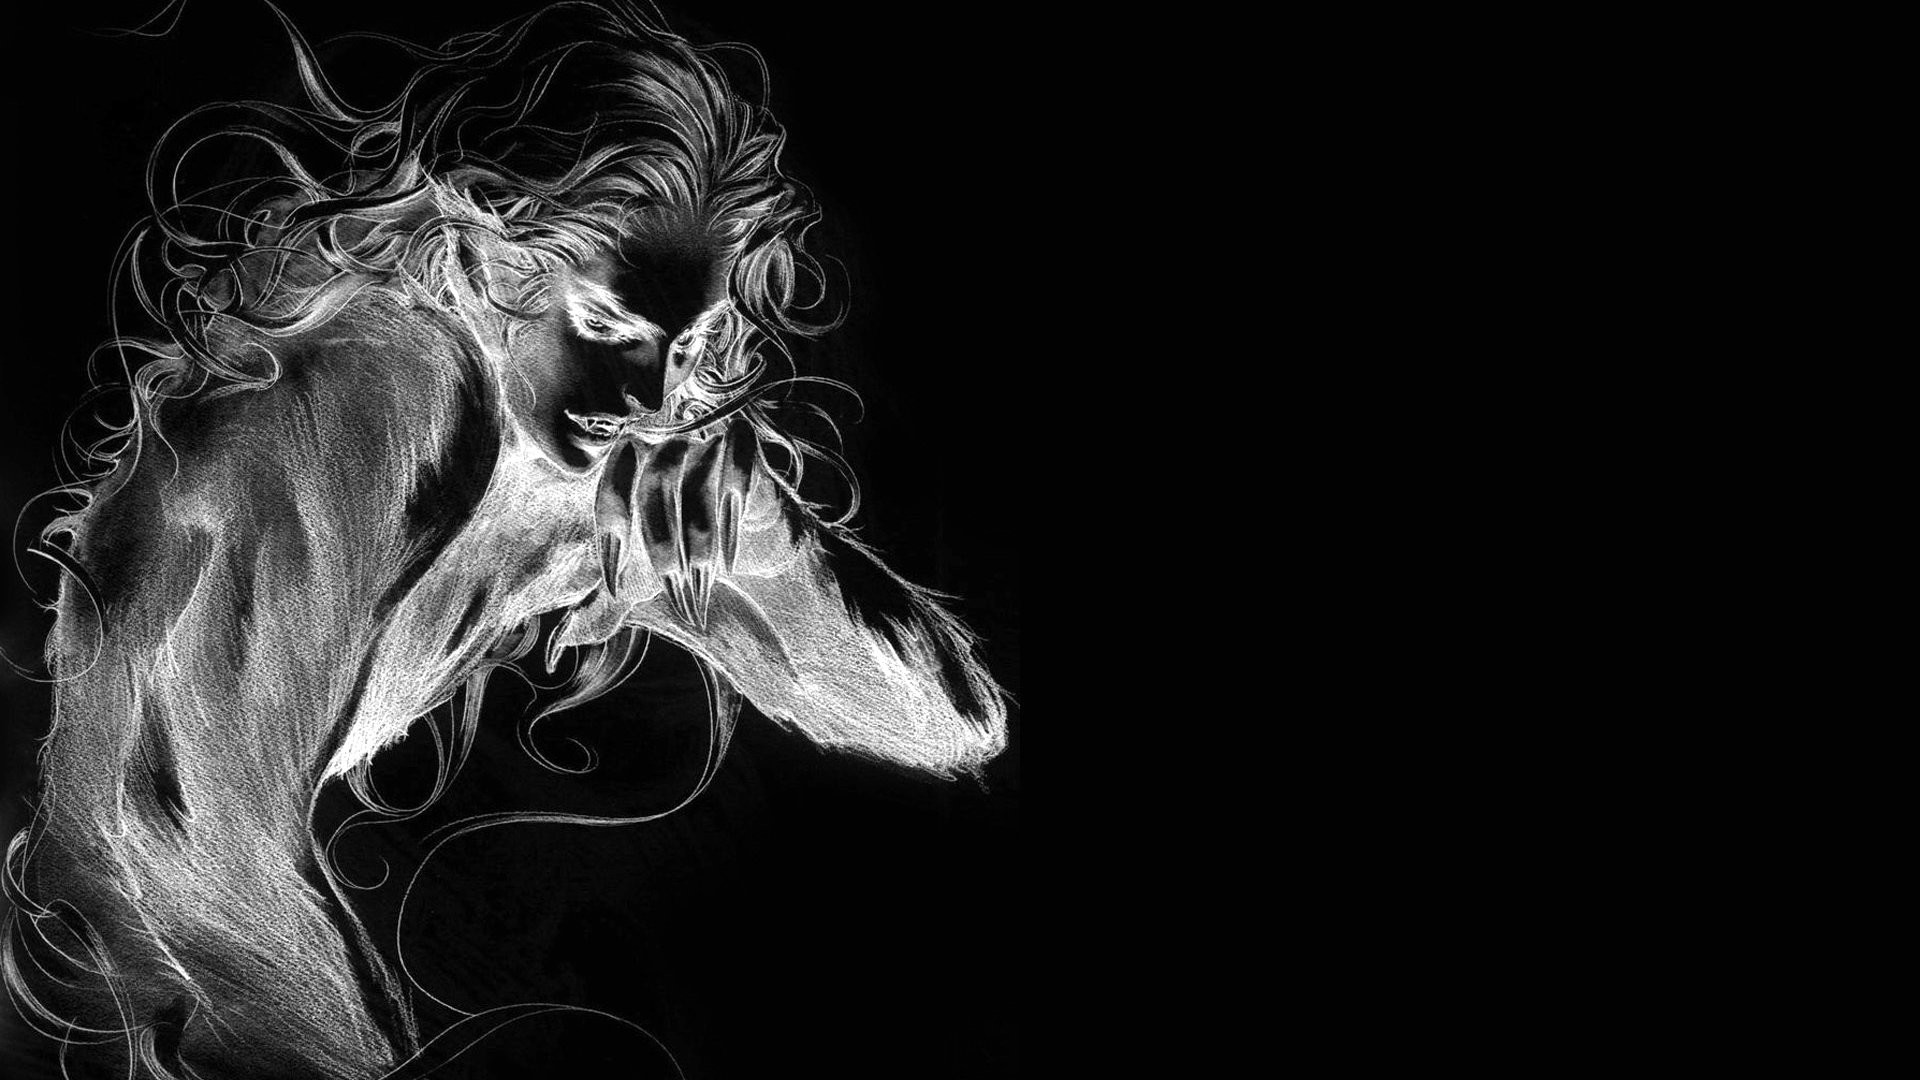 Res: 1920x1080, fantasy warrior, download, art, dark, evil, vampire,castlevania,hd abstract  wallpapers, horror, pictures, gothic Wallpaper HD